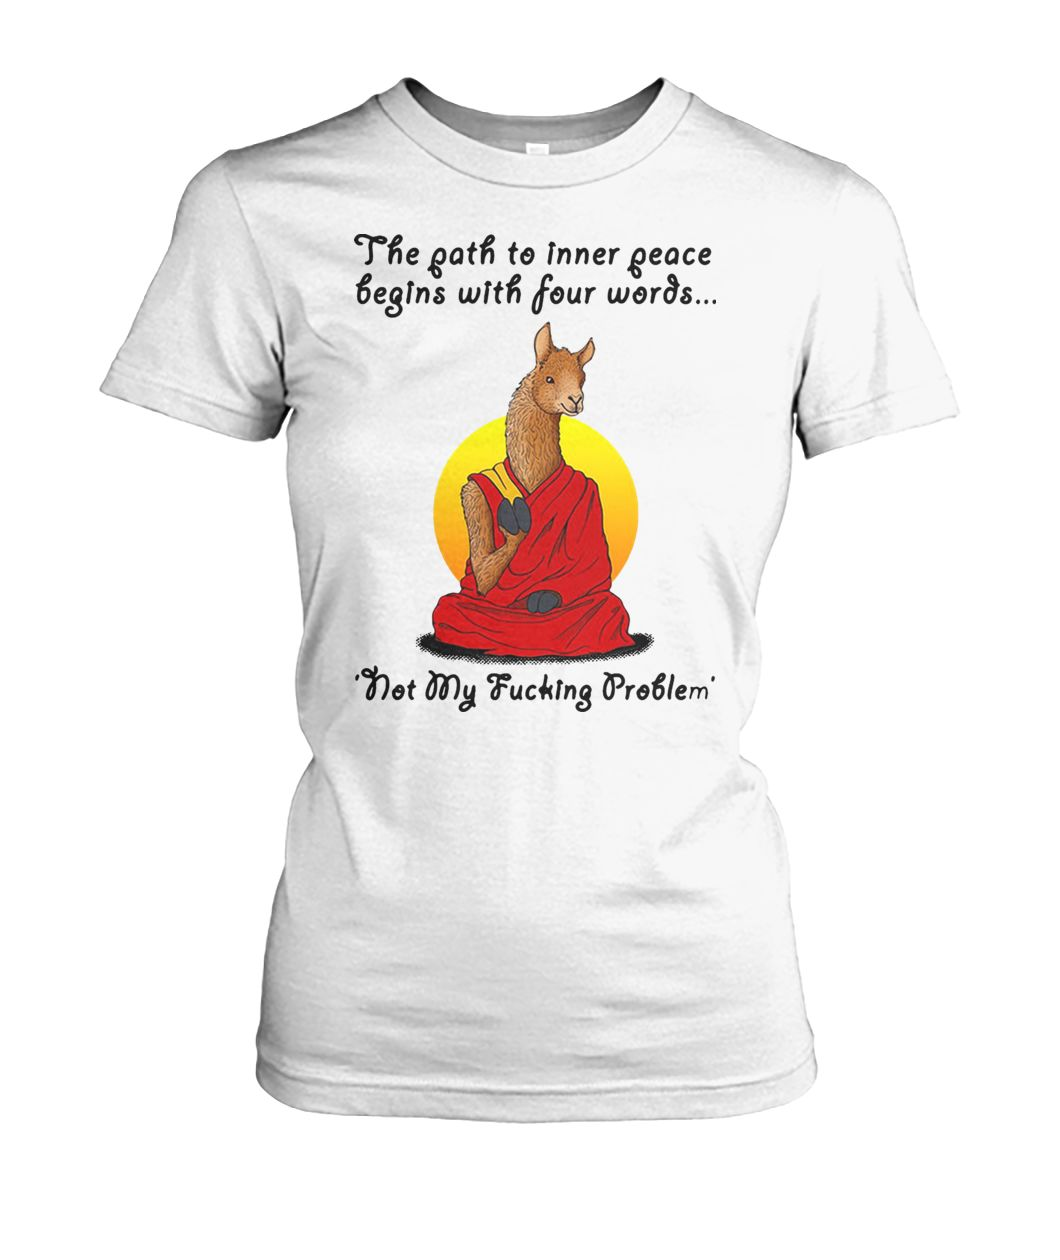 Llama the path to inner peace begin with four words not my fucking problem women's crew tee